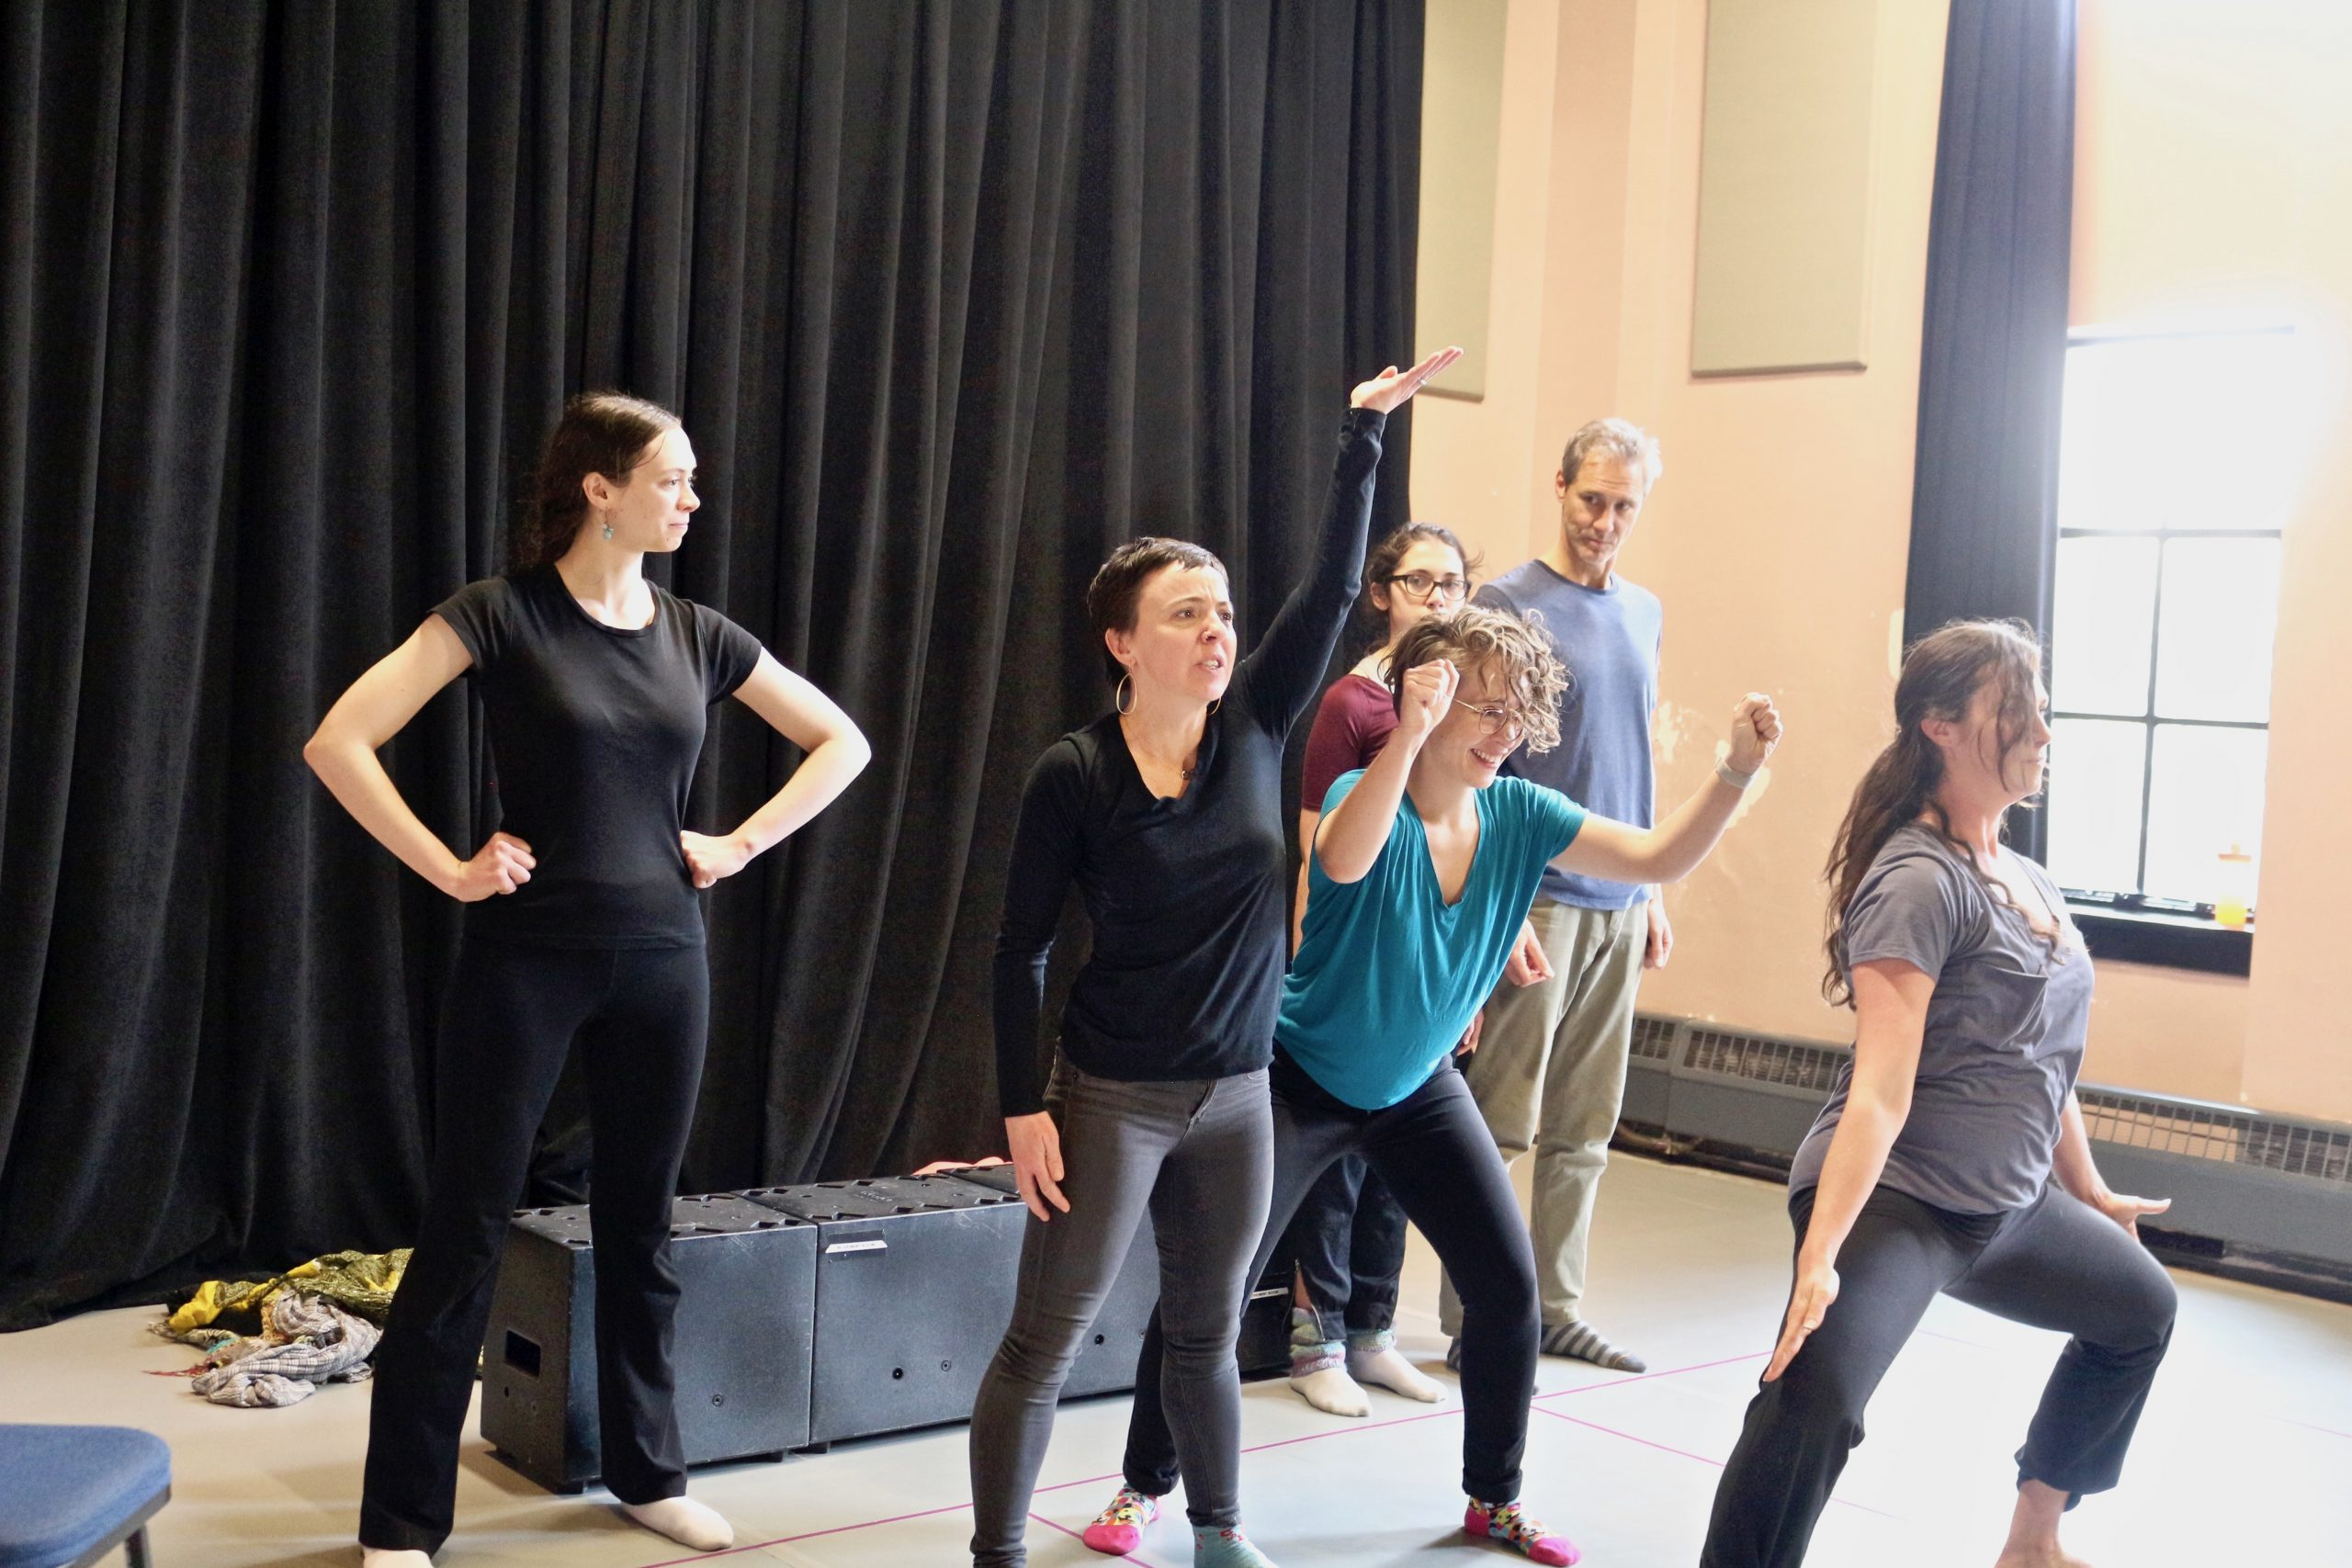 CU Boulder Playback Ensemble rehearses for workshops in Paonia that will be held from January 8 to 11. (Photo by Sue Postema Scheeres, CU Boulder)